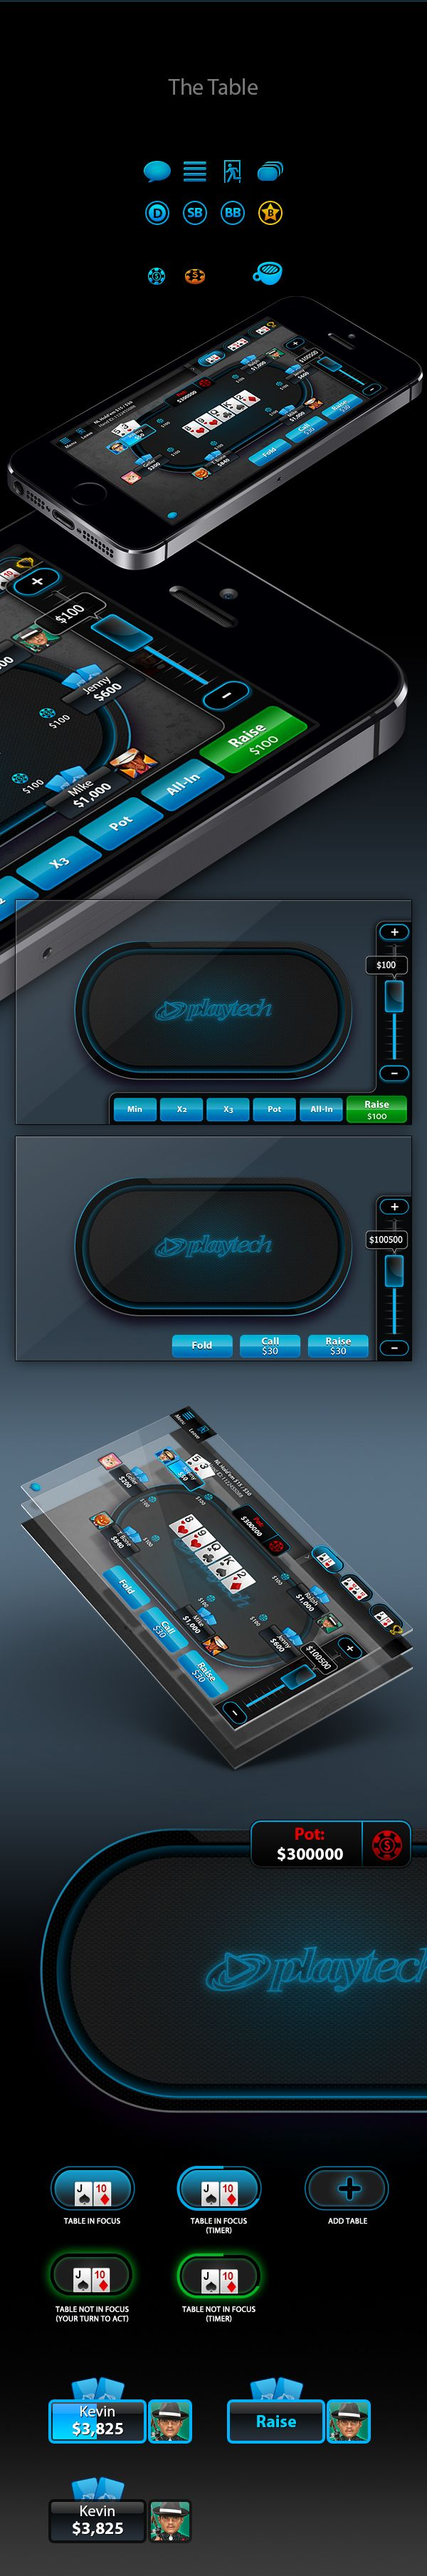 A full iPhone poker game, including game table, lobby